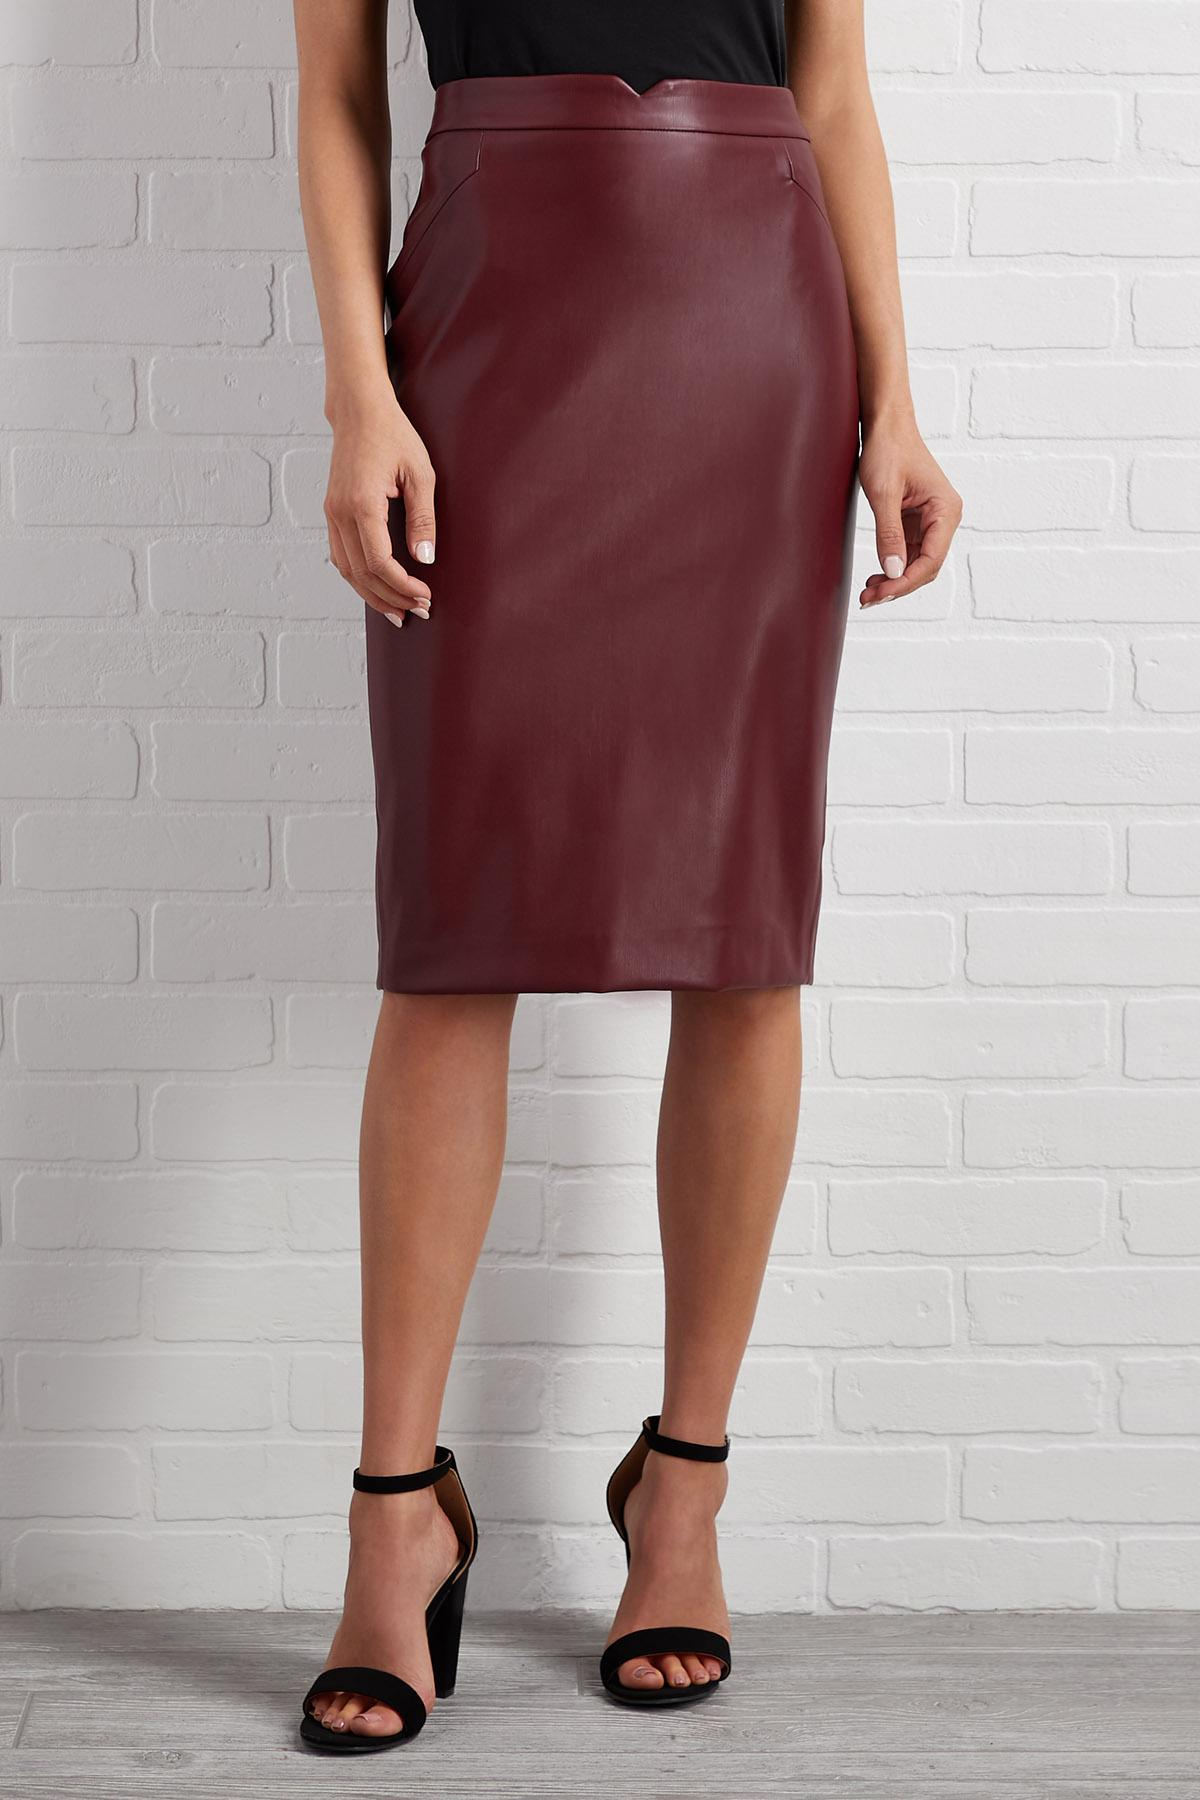 Getting Down To Business Skirt